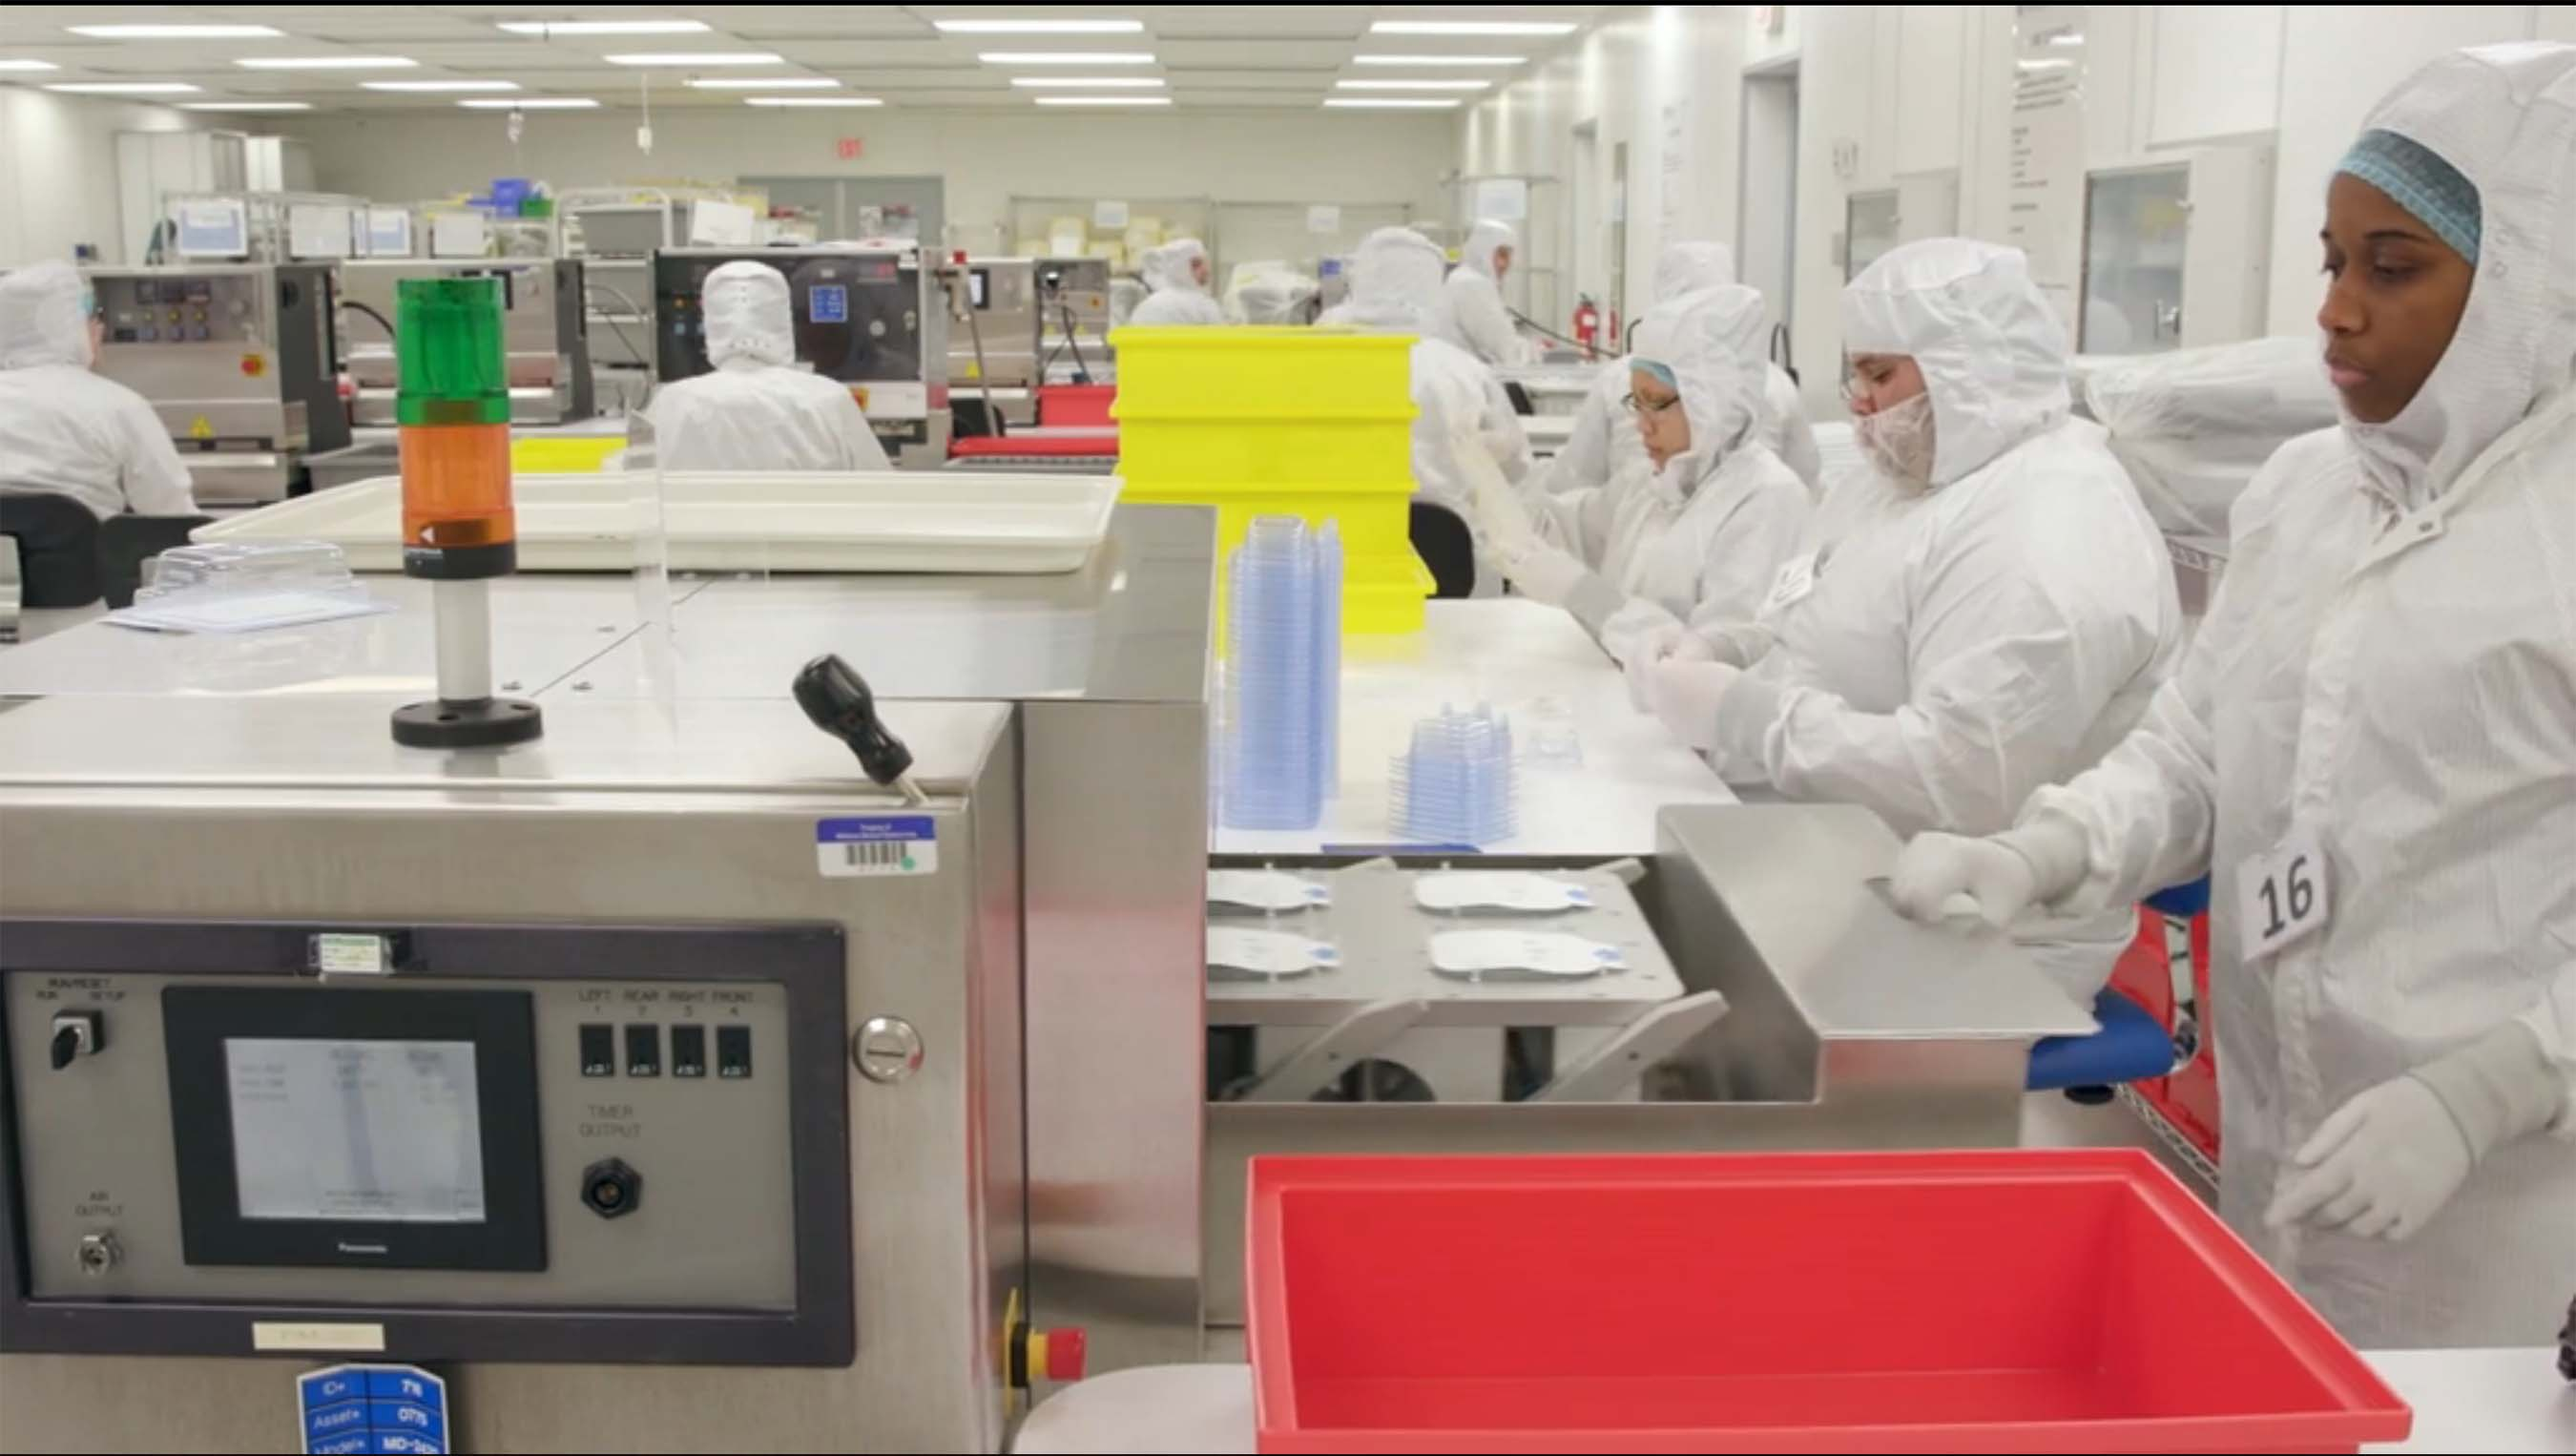 A look inside of Millstone Medical's lab and its employees at work